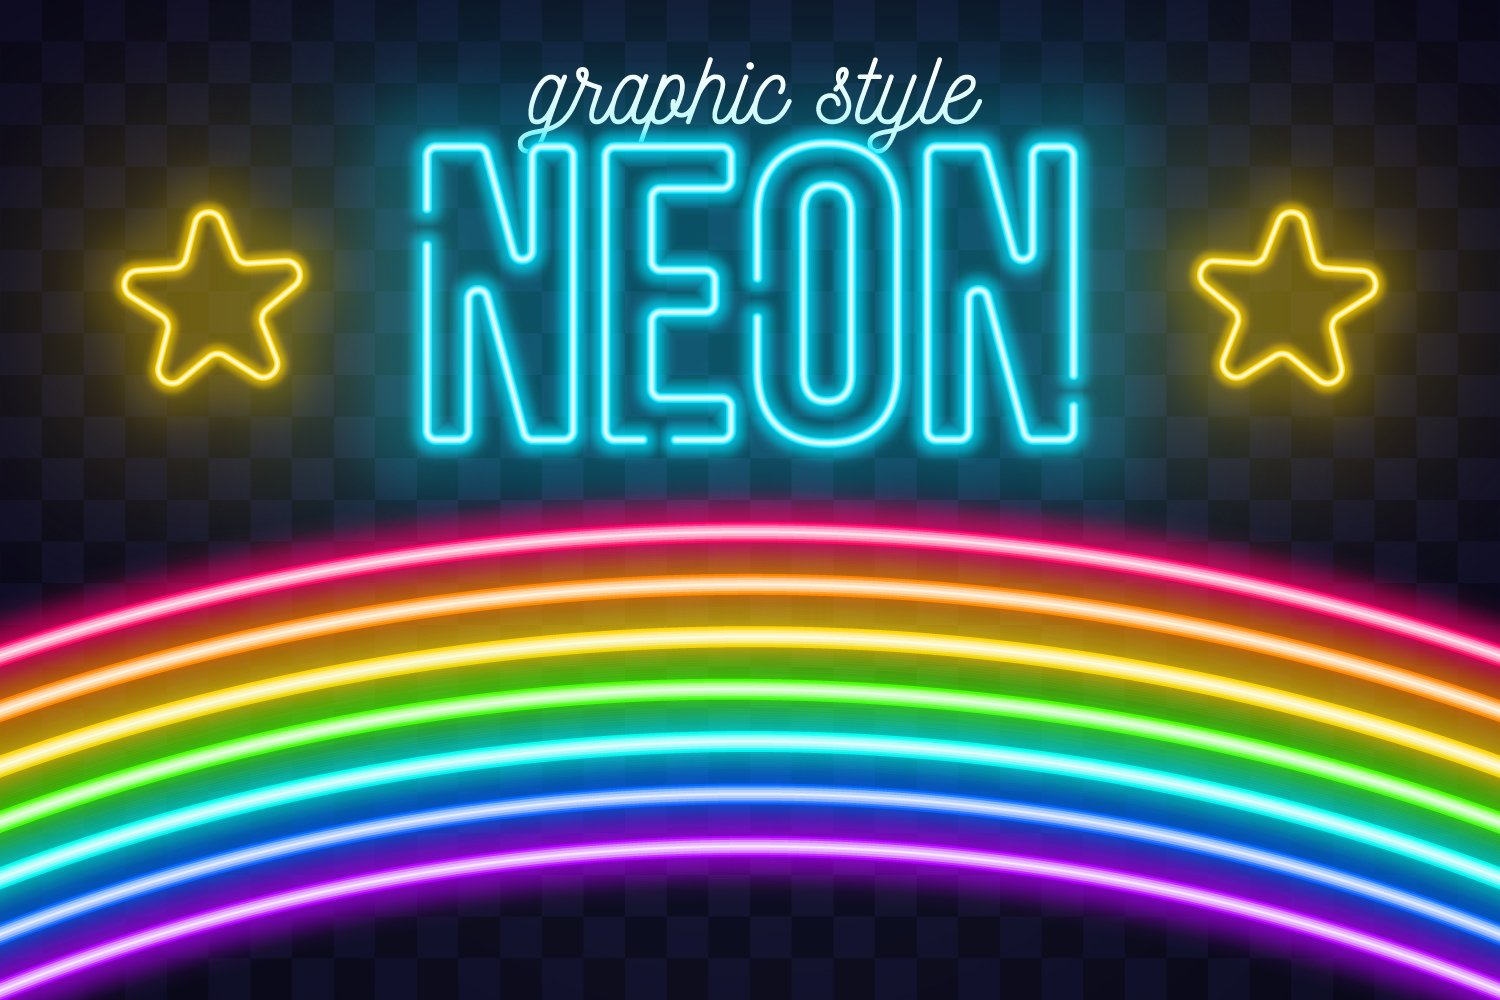 A neon festival of stars and rainbows.